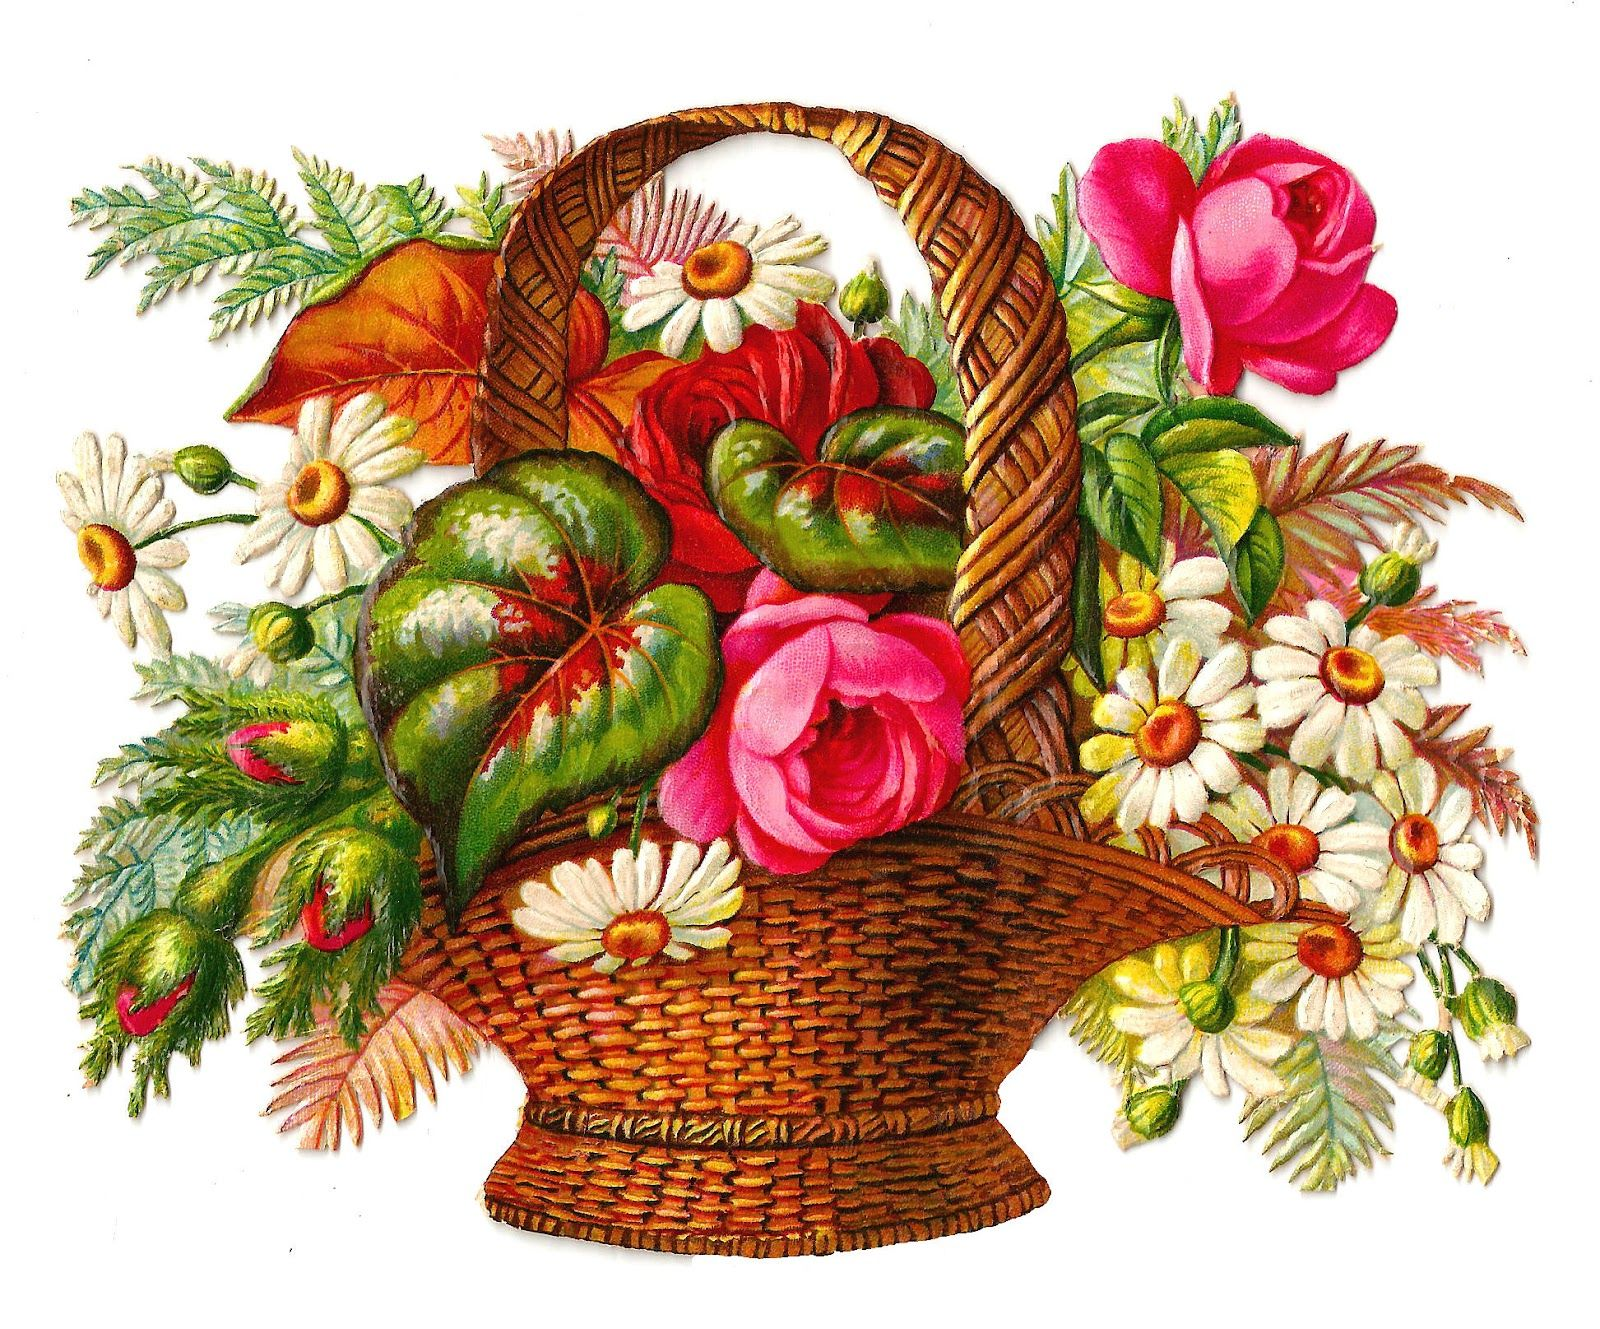 Free images of flower bouquets free flower clip art victorian die free images of flower bouquets free flower clip art victorian die cut of flower izmirmasajfo Image collections